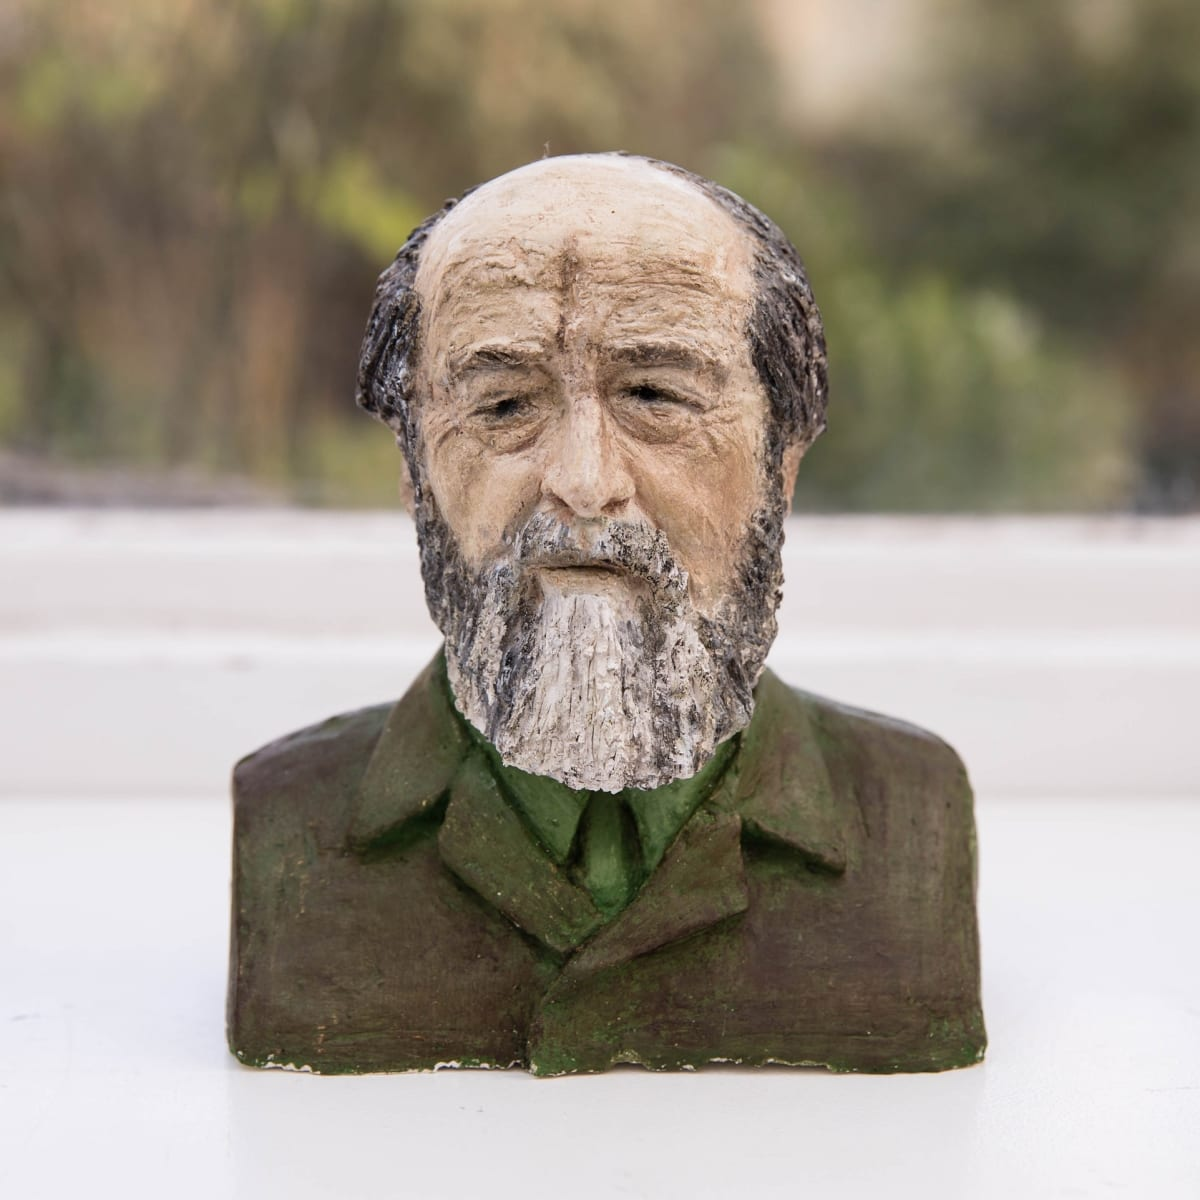 Nicole Farhi Aleksandr Solzhenitsyn ciment fondu and acrylic; hand-painted bronze casts available to purchase 18 x 16 x 7 cm edition of 7 + 3 APs